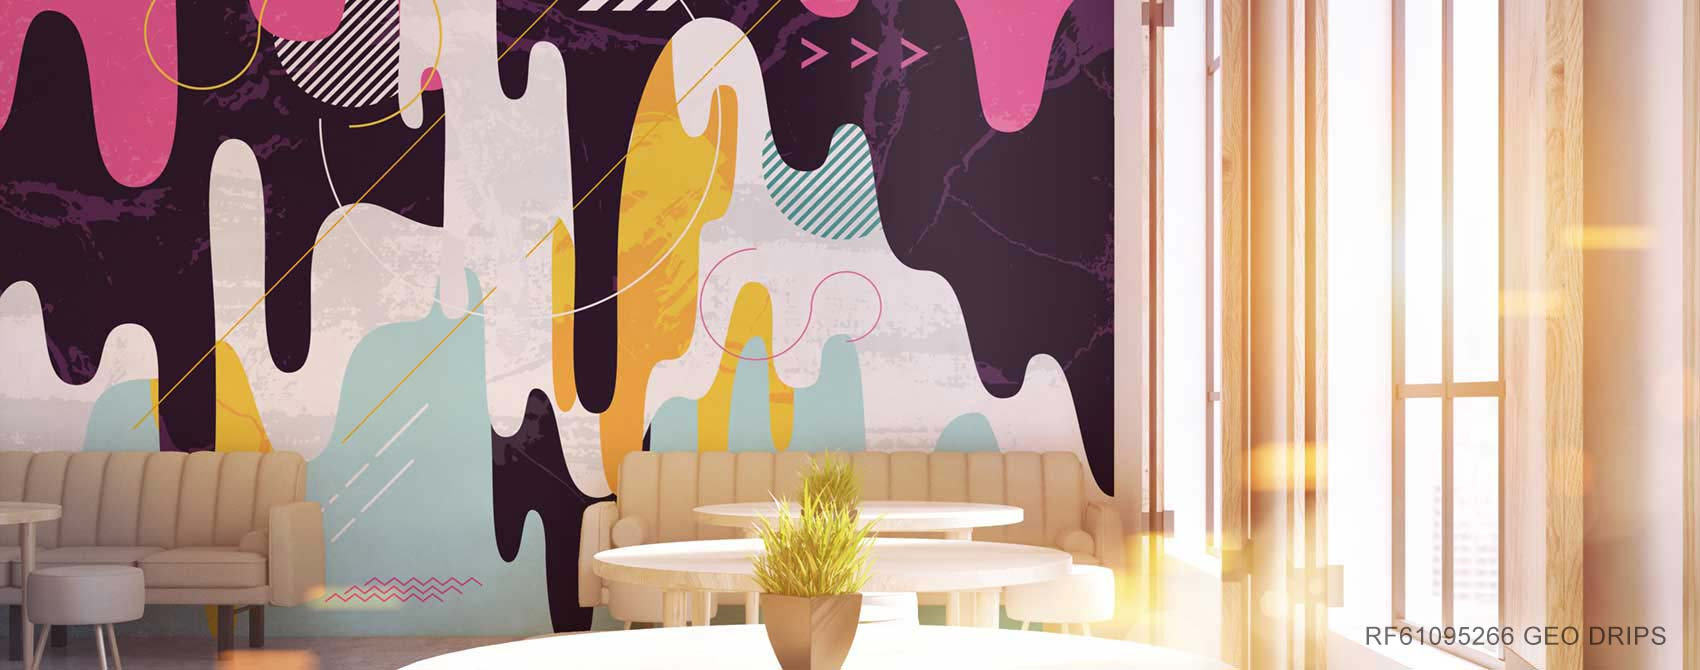 Geo Drips Wallpaper Mural